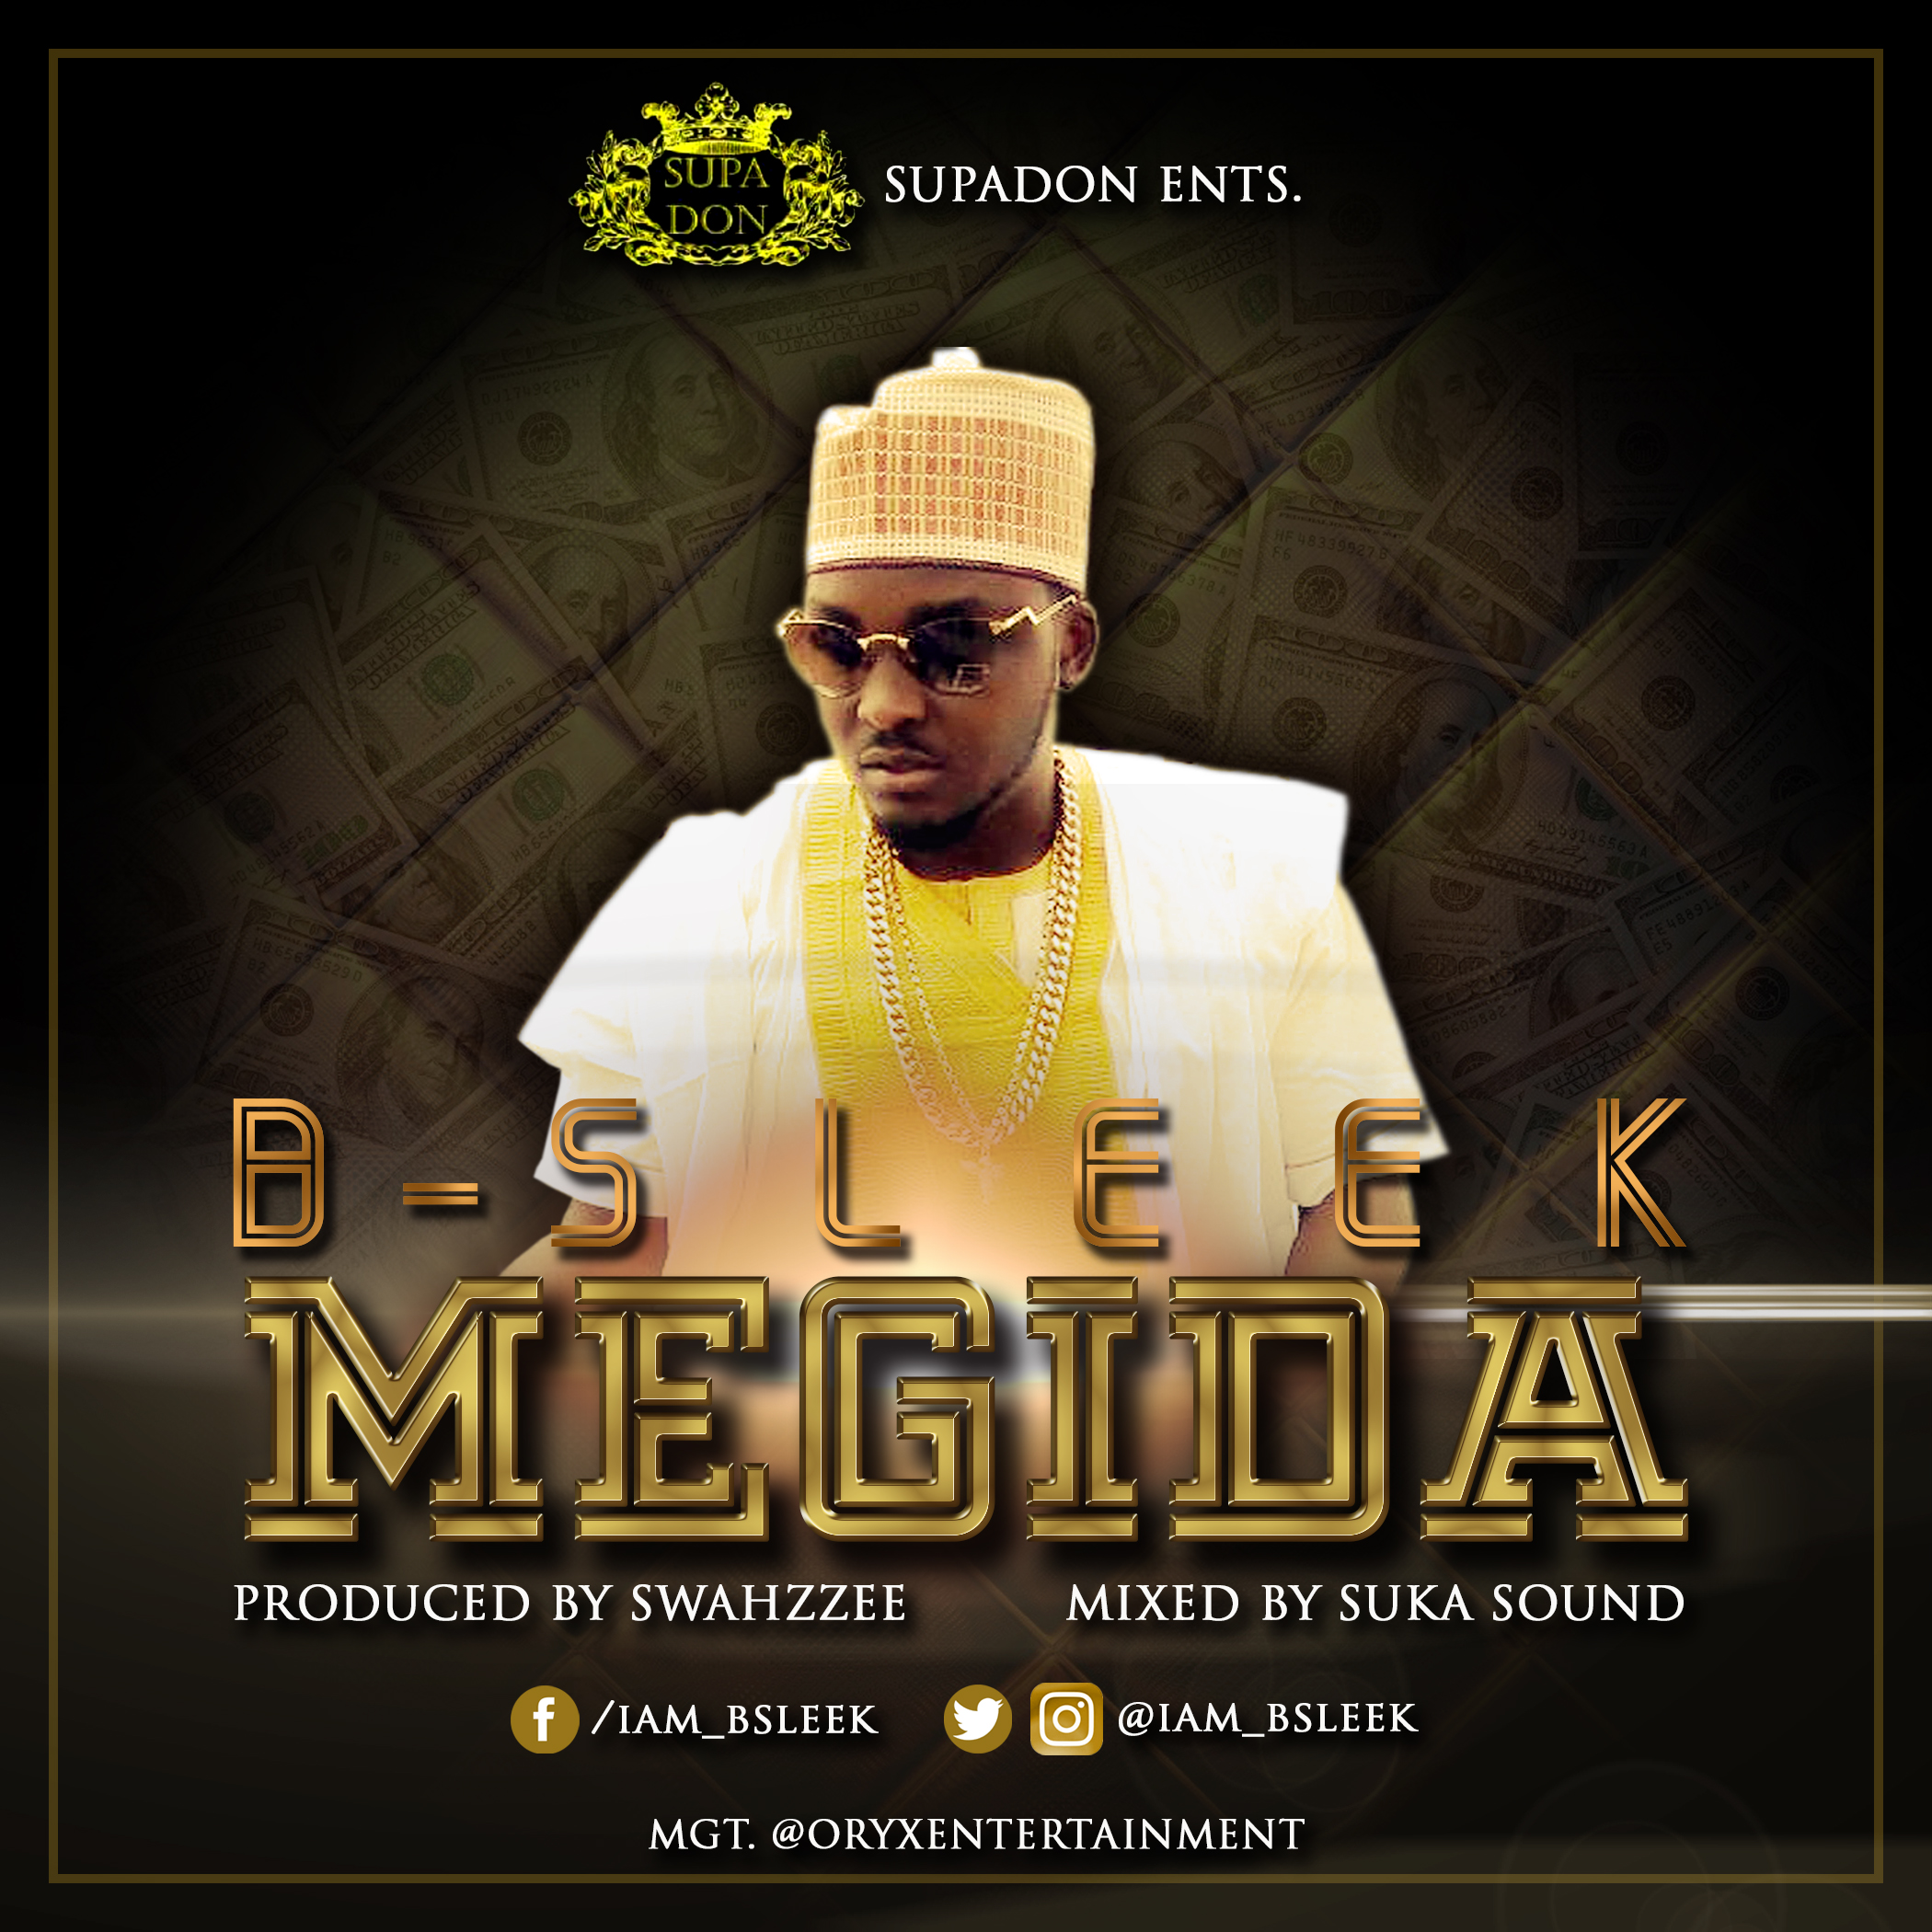 VIDEO: B-Sleek – Mediga